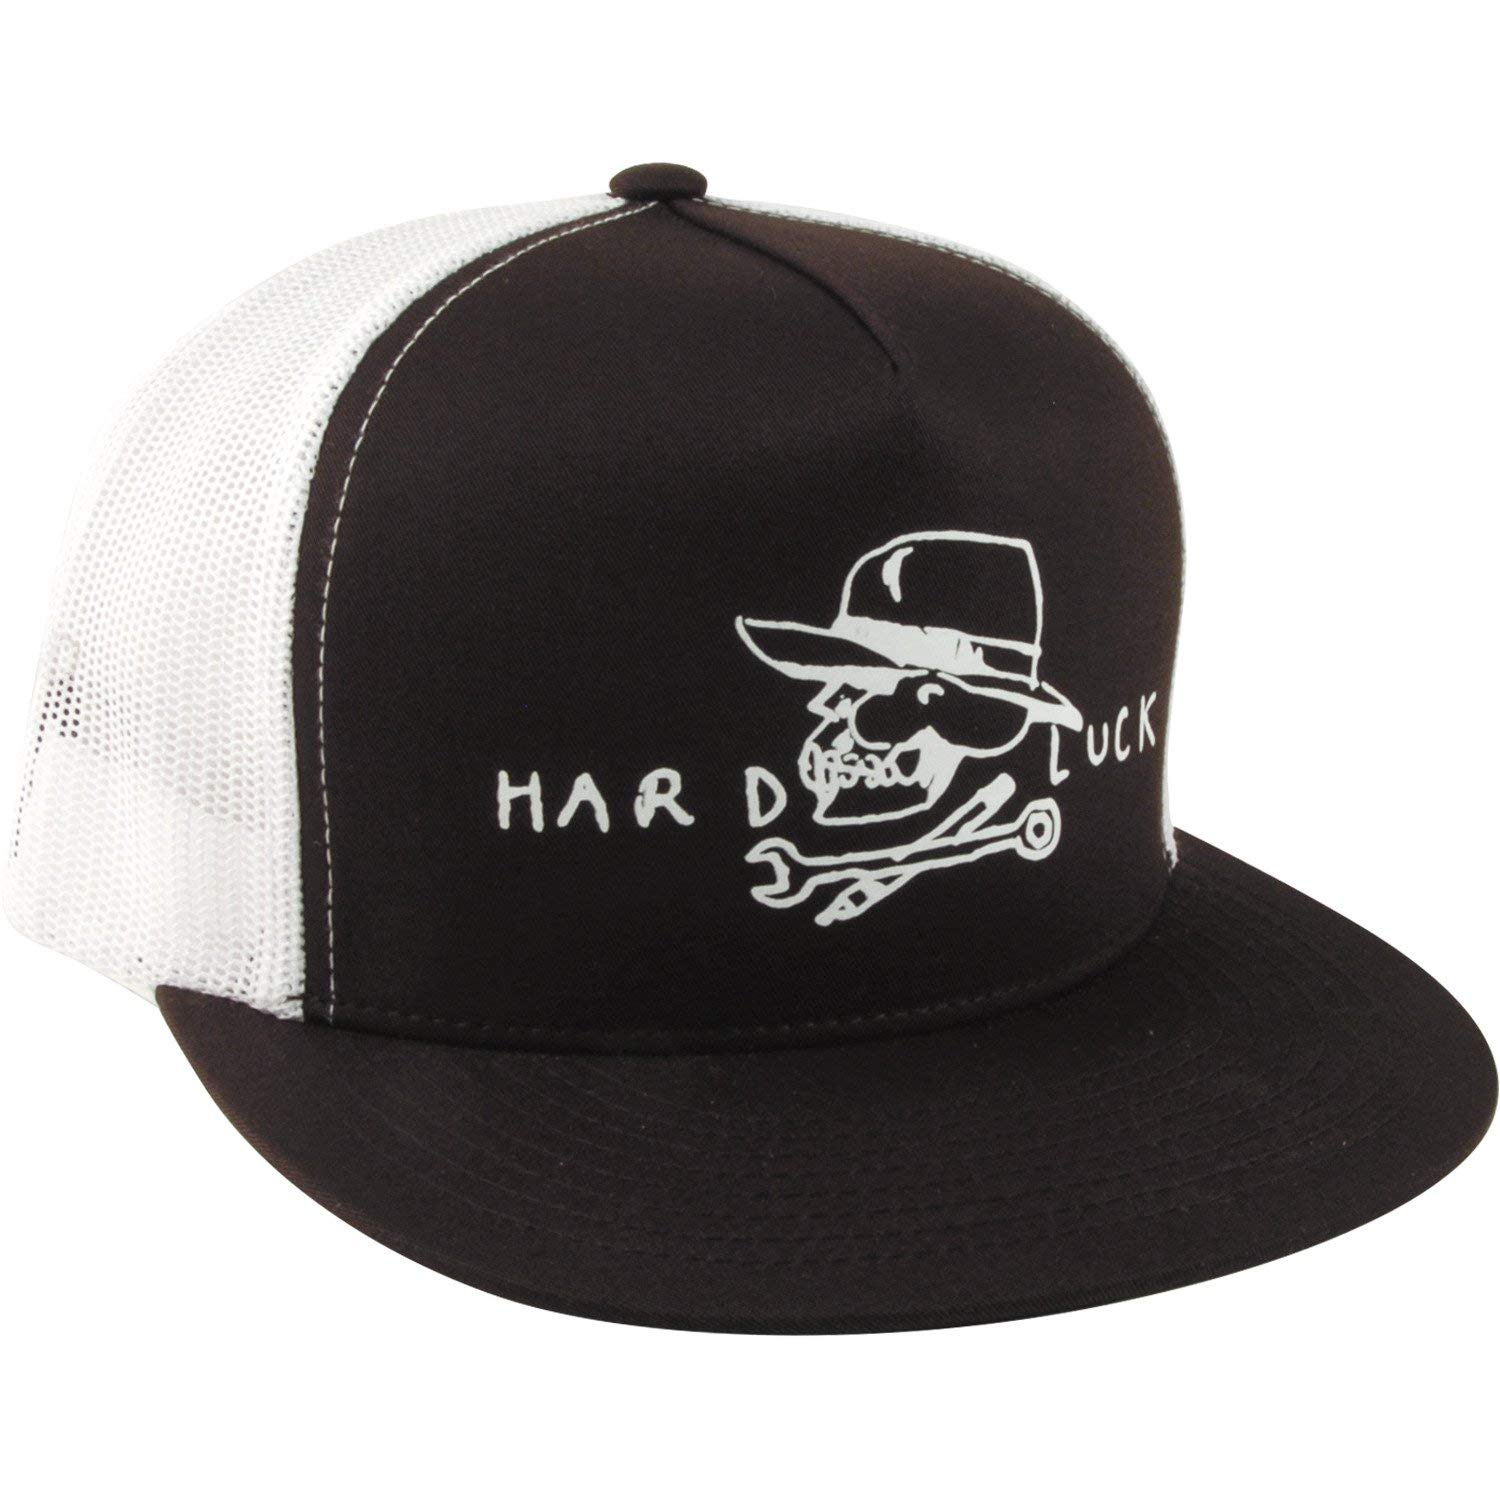 5140726b466 Get Quotations · Hard Luck MFG Hard Skull Black White Mesh Trucker Hat -  Adjustable